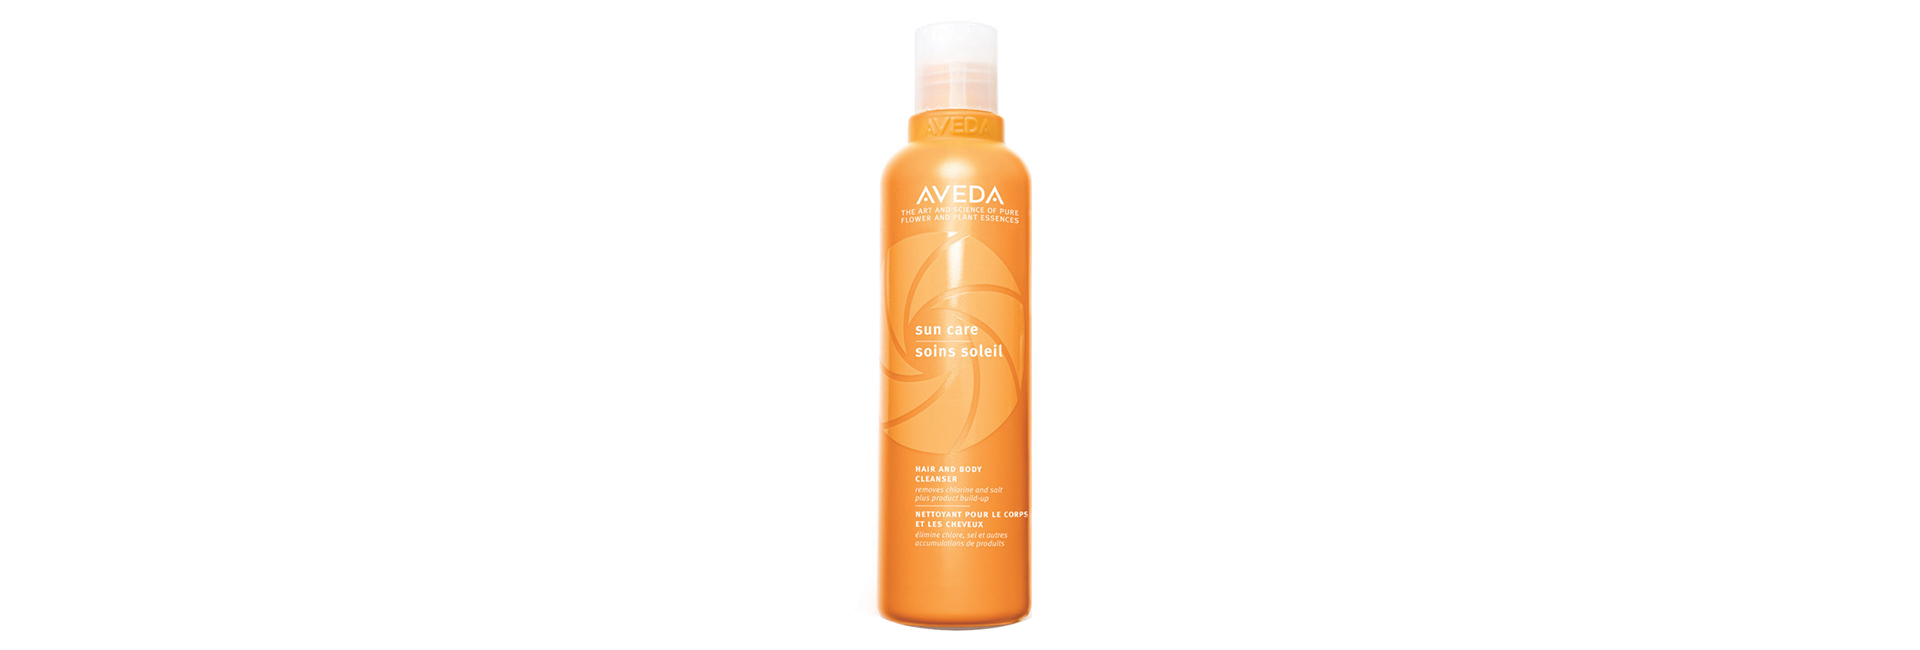 hair-and-body-cleanser-sun-care-aveda-blog-beaute-soin-parfum-homme